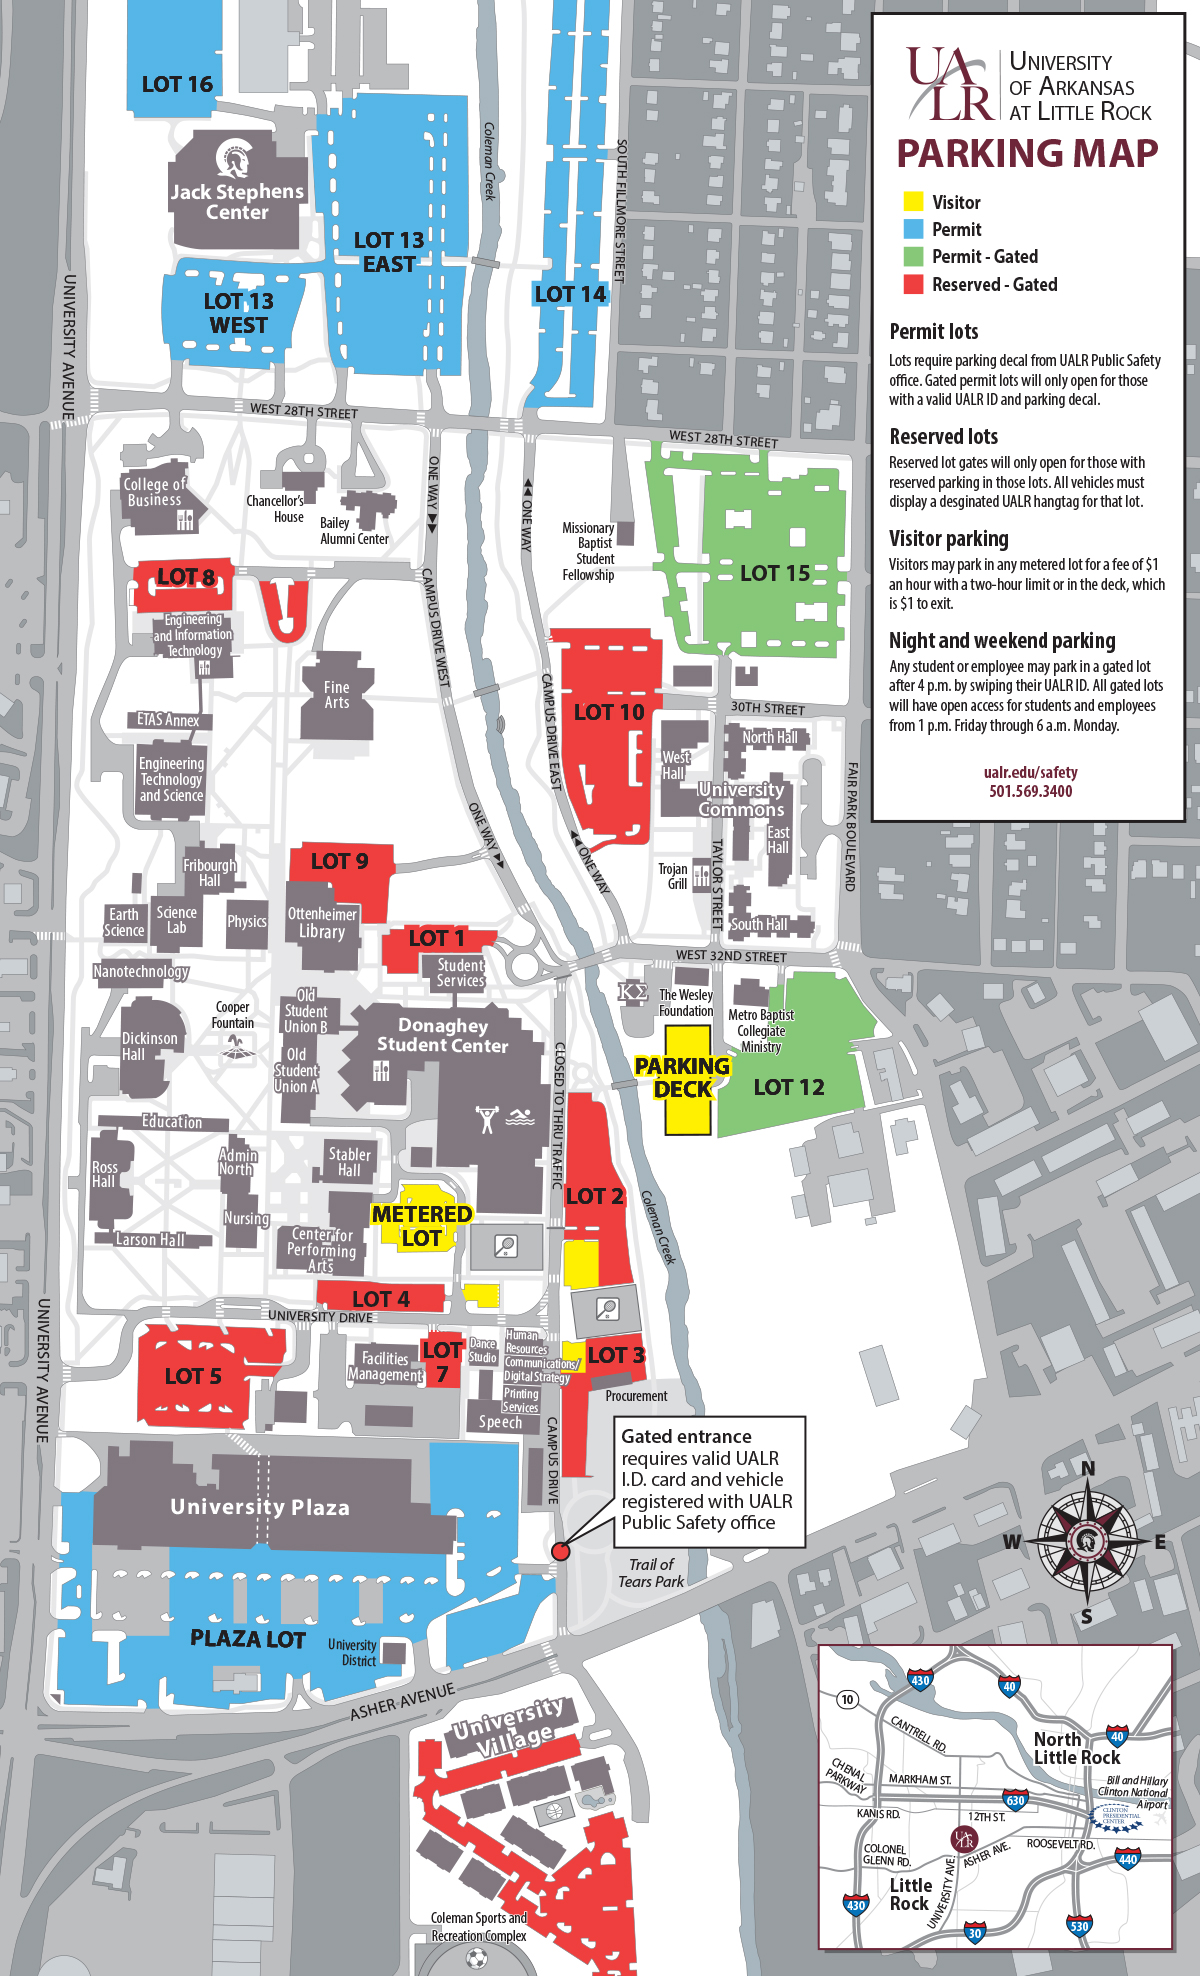 Ualr Campus Map ualr parking map 2015   Advanced Placement Summer Institute